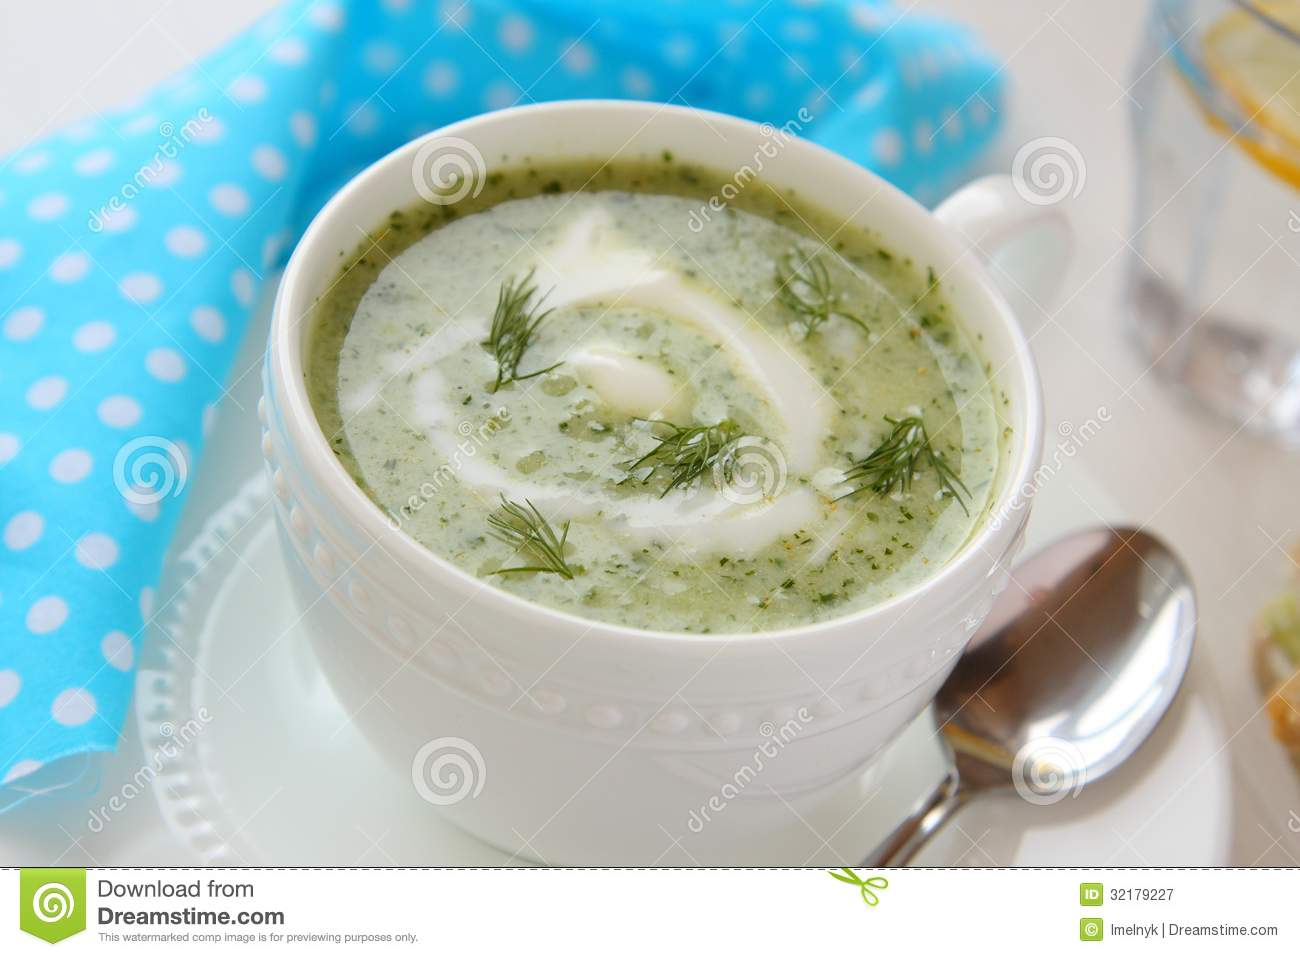 Cold Cucumber Soup With Dill And Yogurt Royalty Free Stock Photography ...